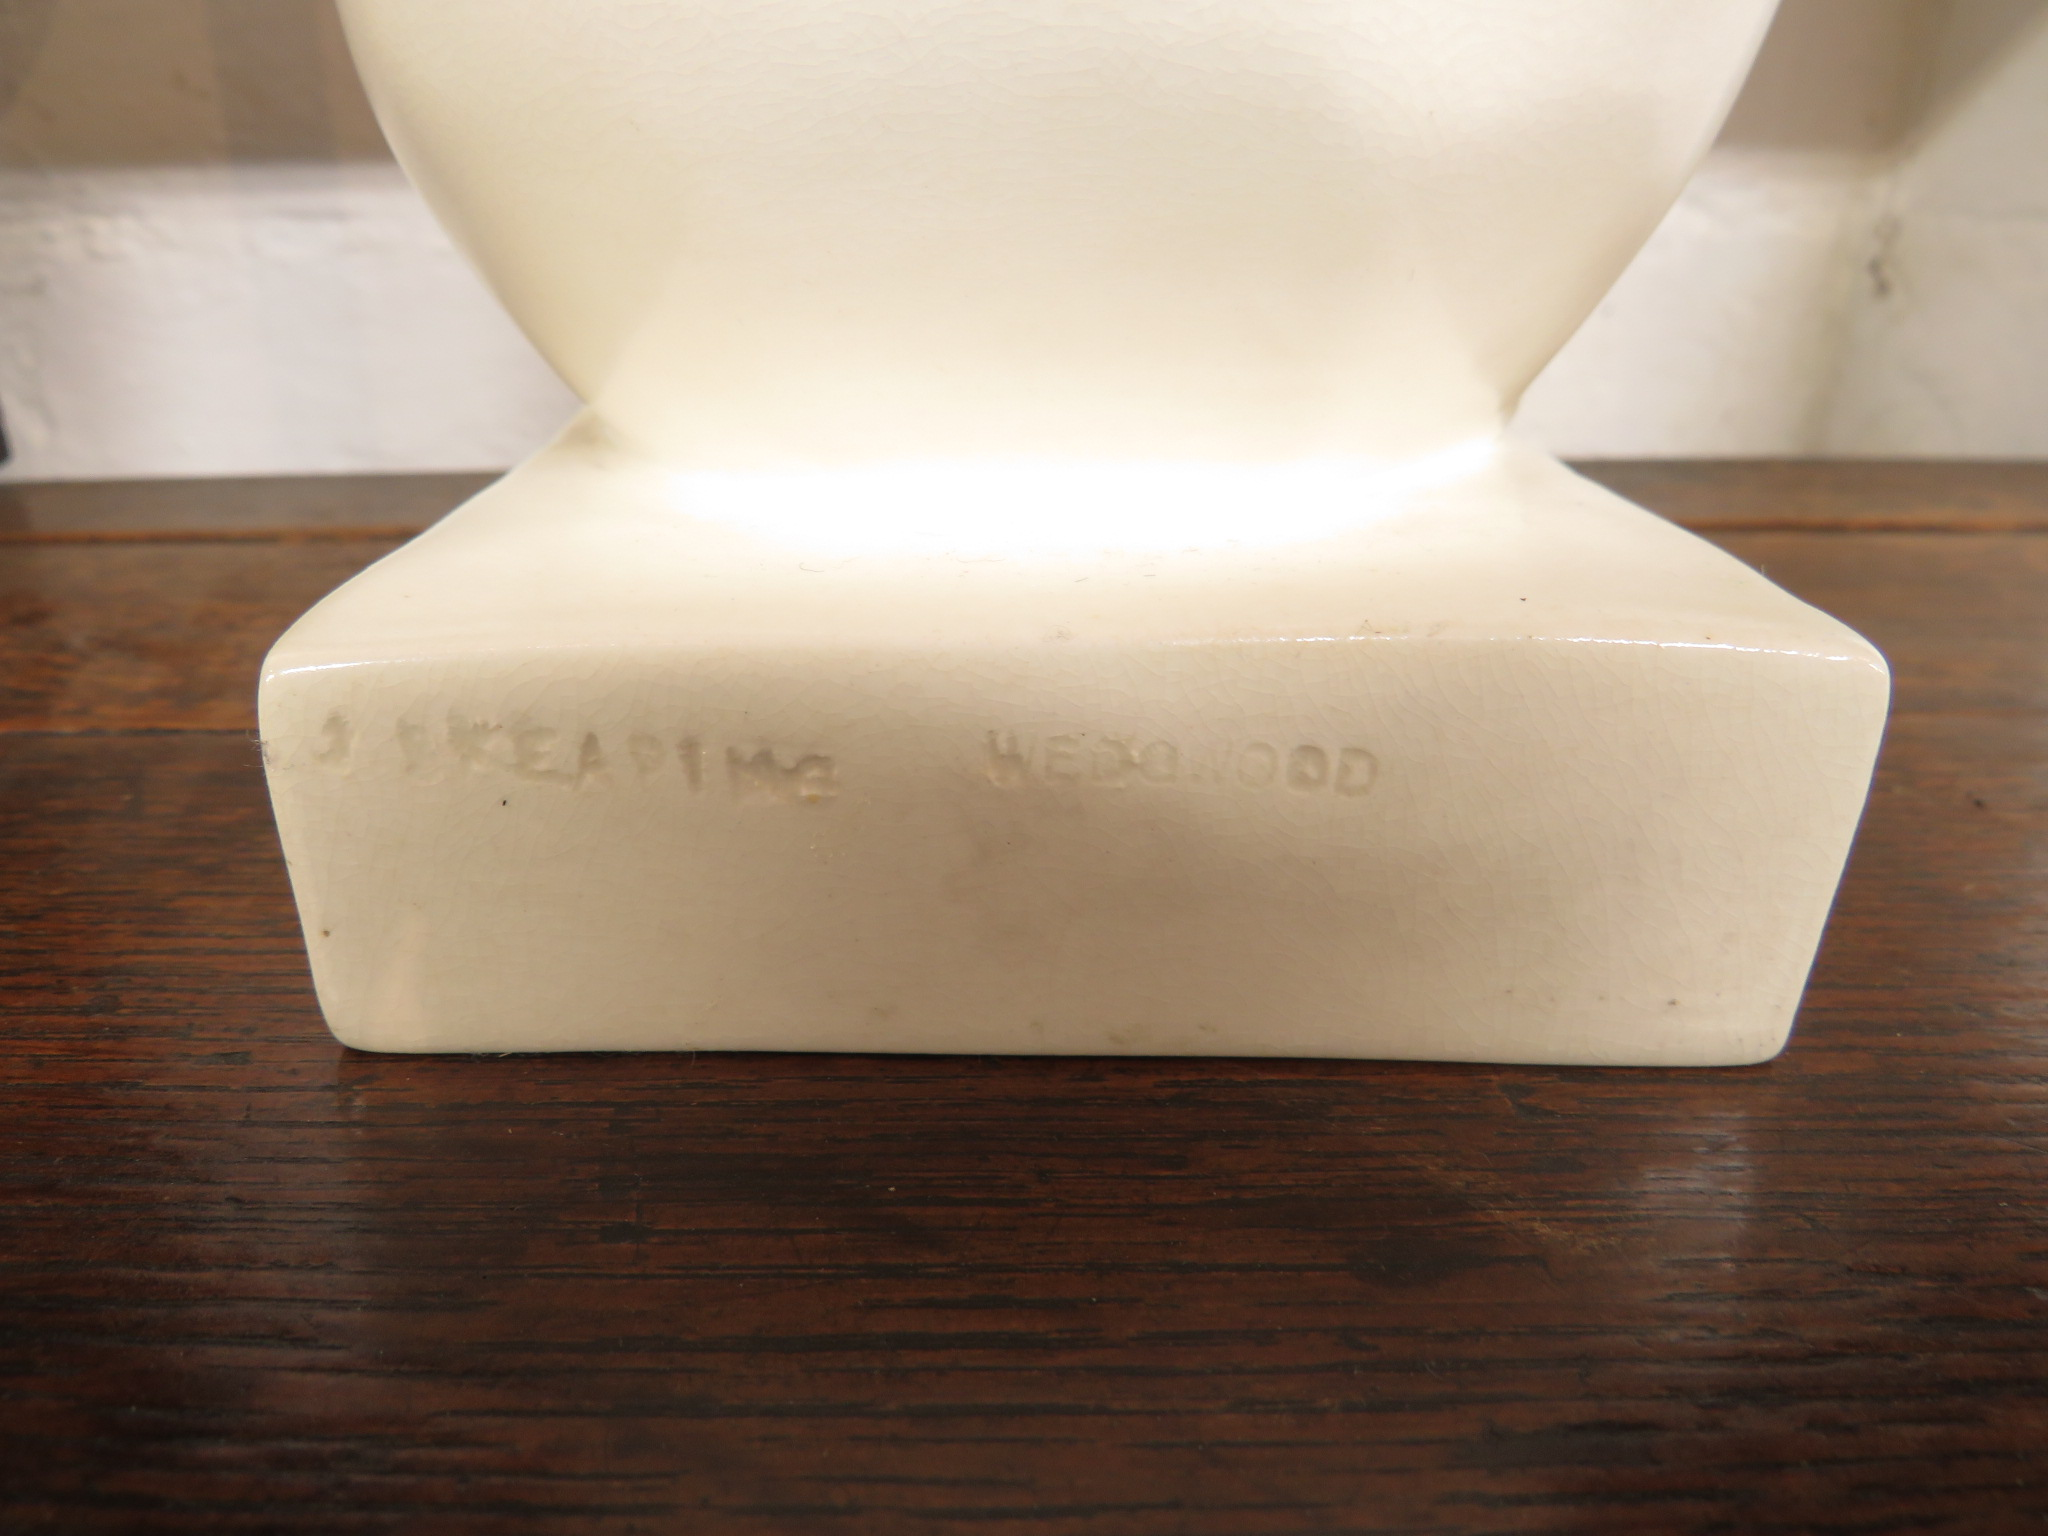 Lot 83 - Wedgwood Etruria pottery model of a polar bear by John Skeaping, cream colour, the bear is seated on